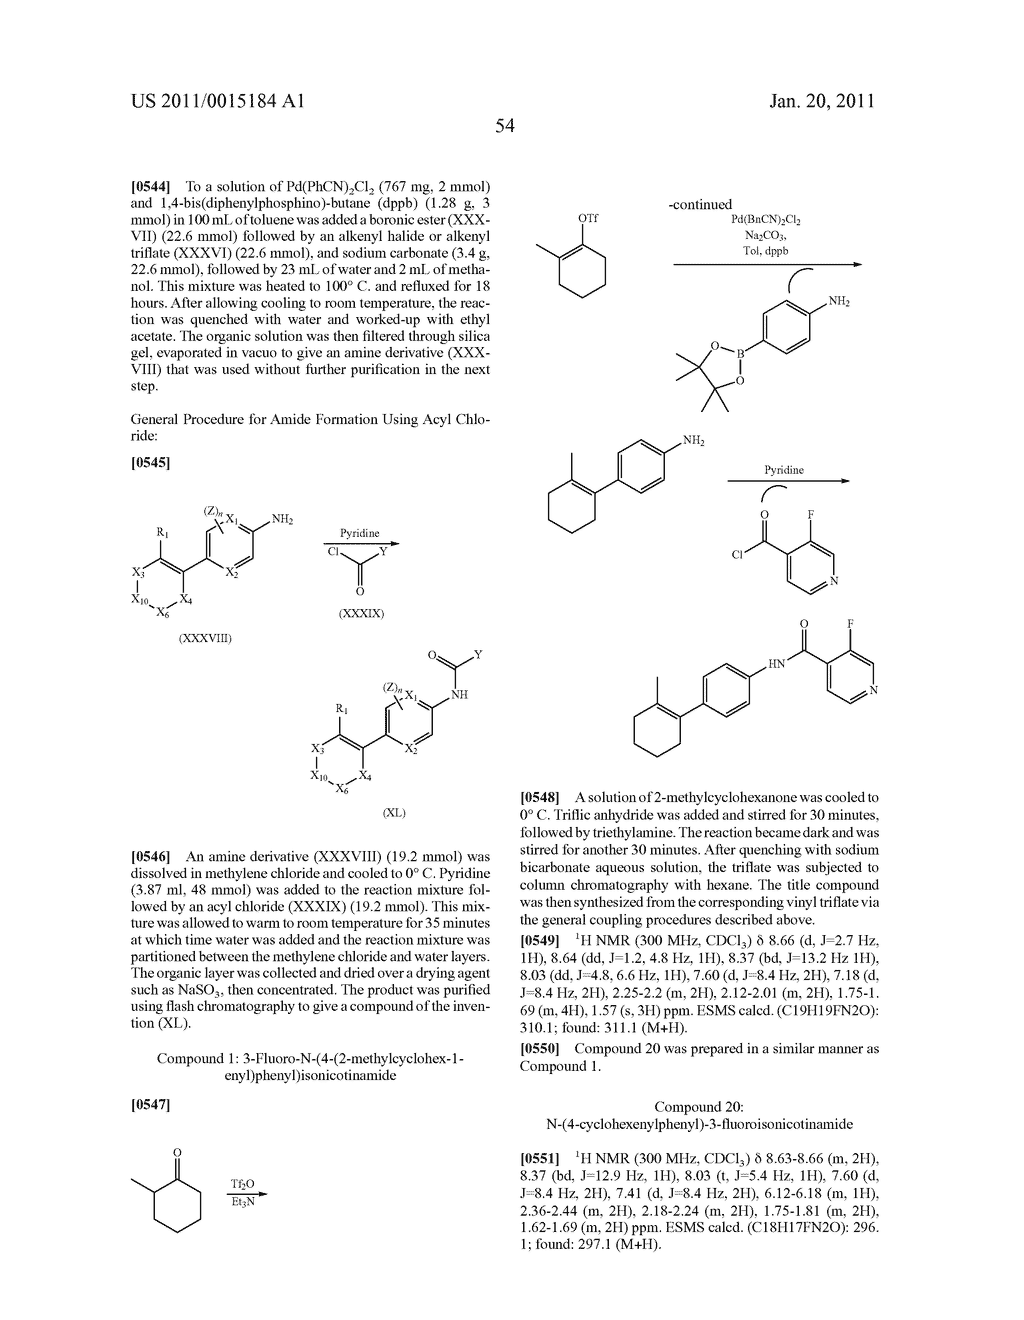 VINYL-PHENYL DERIVATIVES FOR INFLAMMATION AND IMMUNE-RELATED USES - diagram, schematic, and image 55